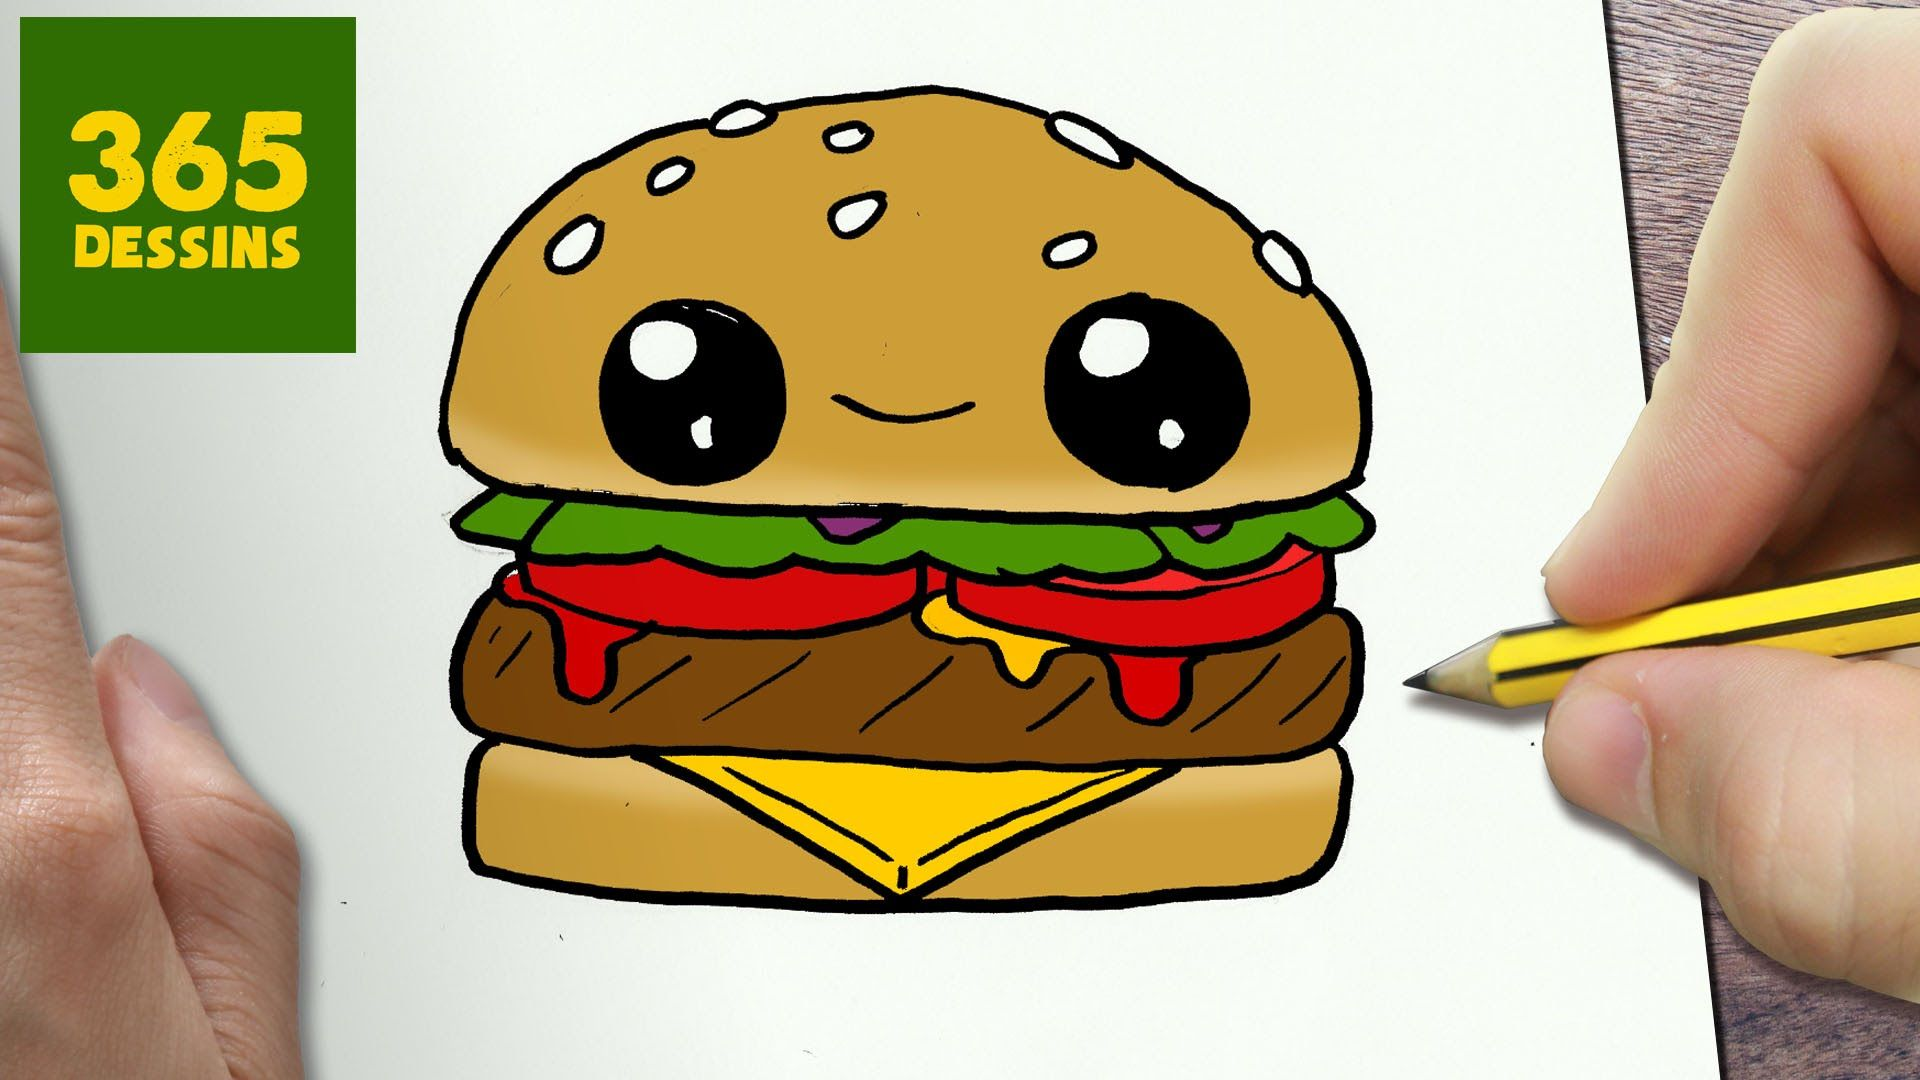 COMMENT DESSINER HAMBURGER KAWAII ÉTAPE PAR ÉTAPE